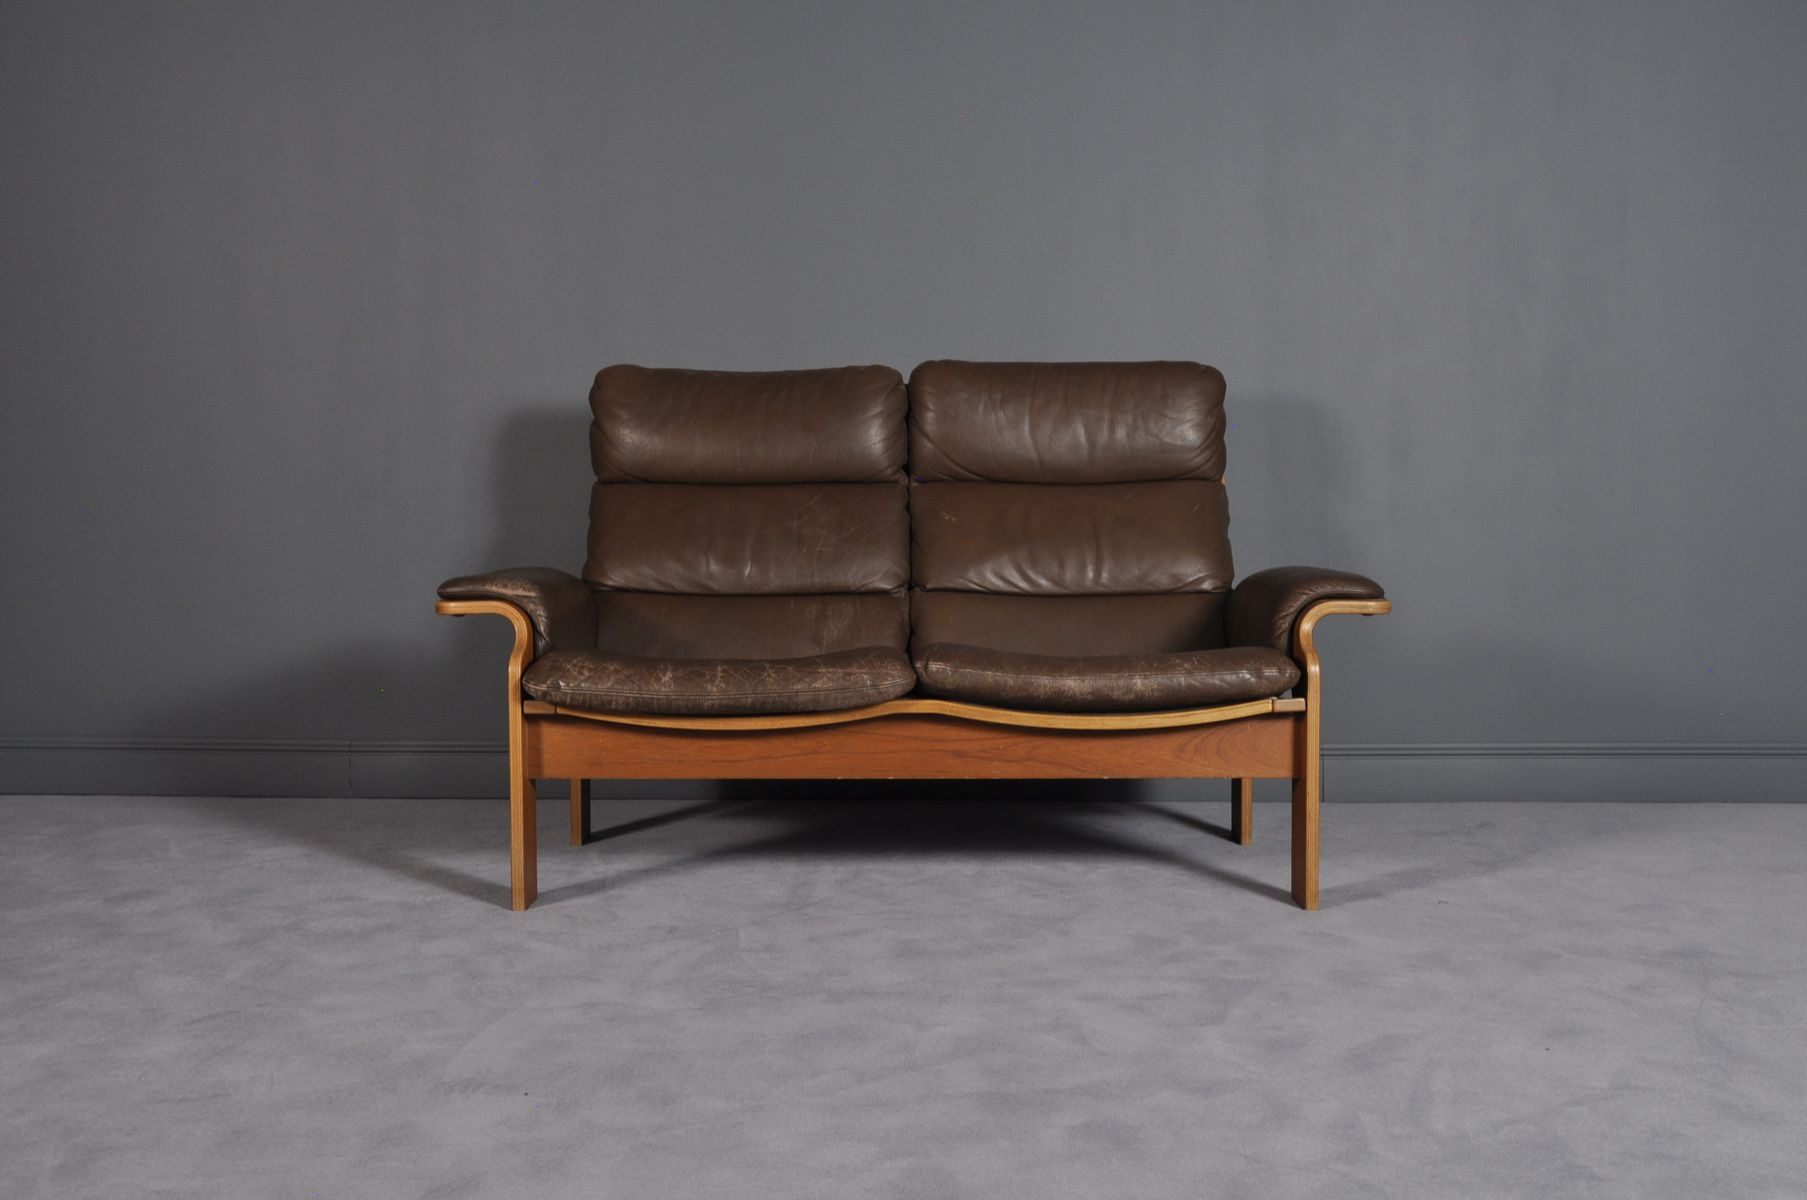 Norwegian Bentwood & Leather Loveseat, 1960s for sale at Pamono